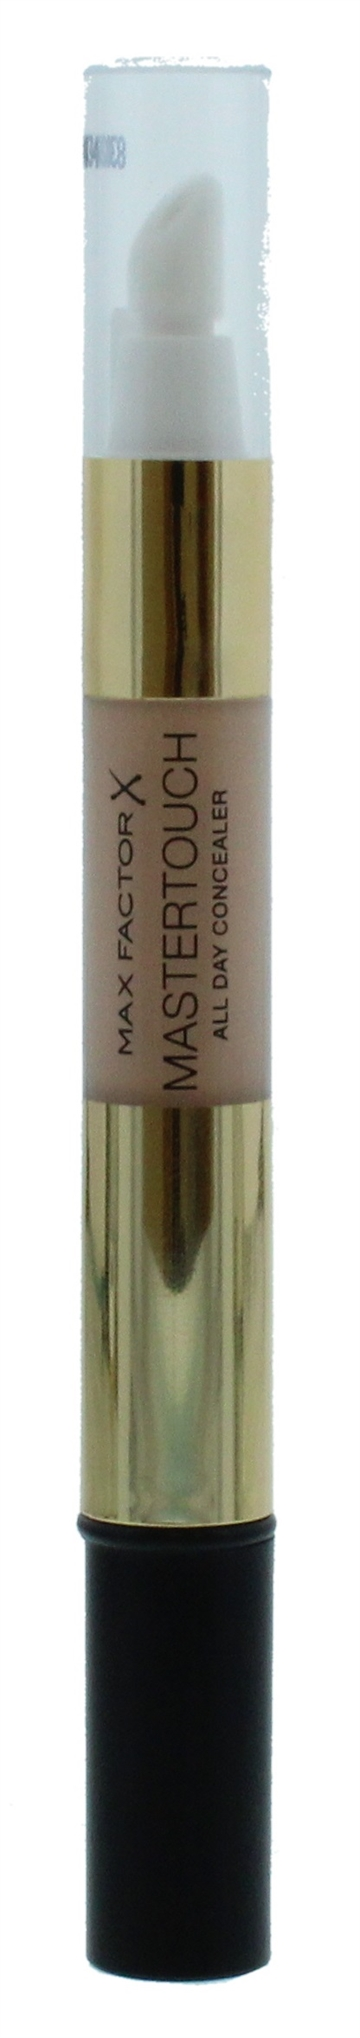 Max Factor Mastertouch Concealer Cash 307